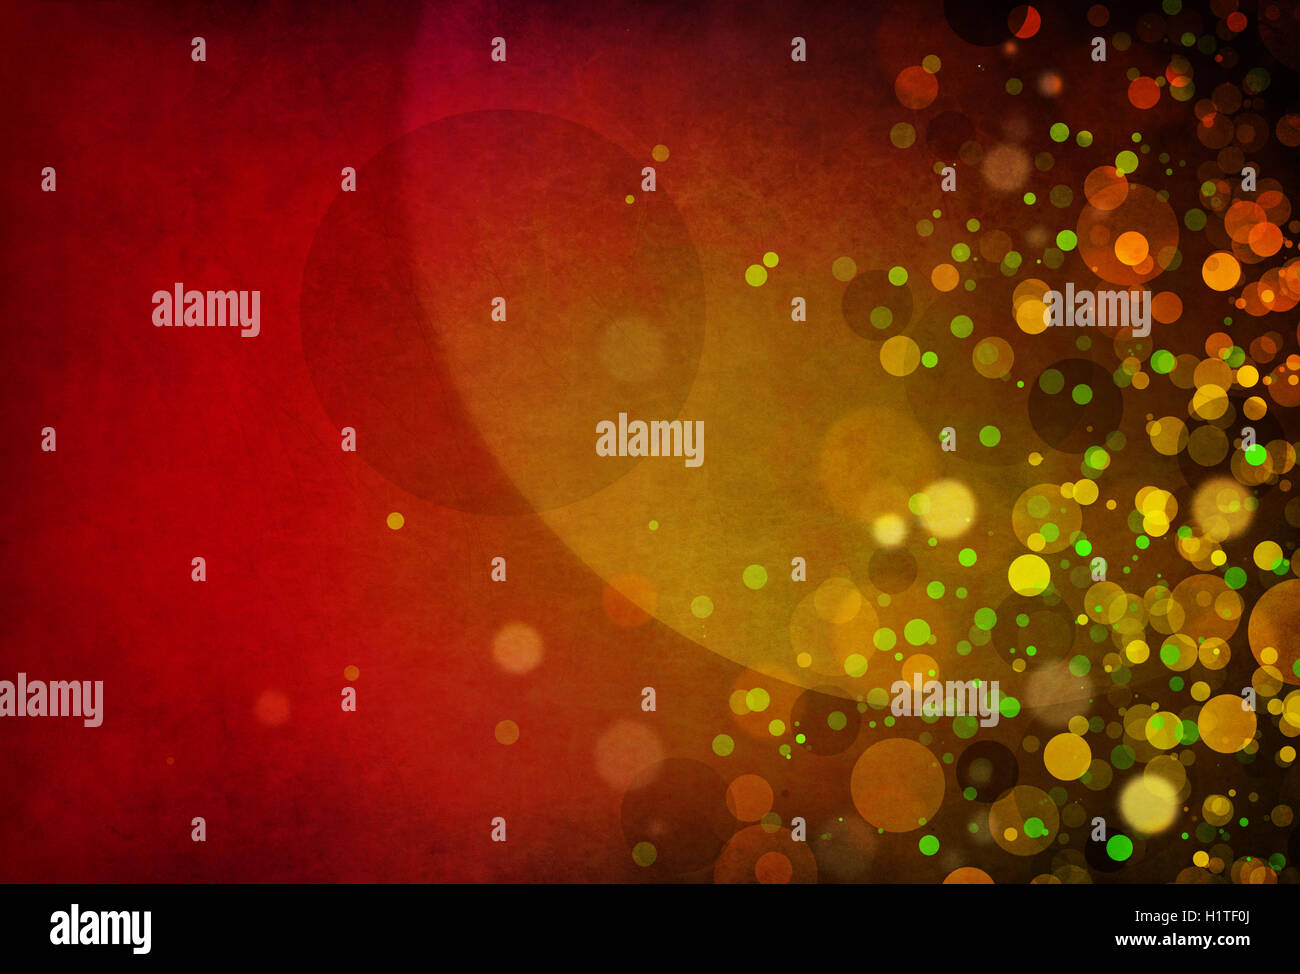 Computer generated Christmas background with shapes, blurs, motion an light effects - Stock Image